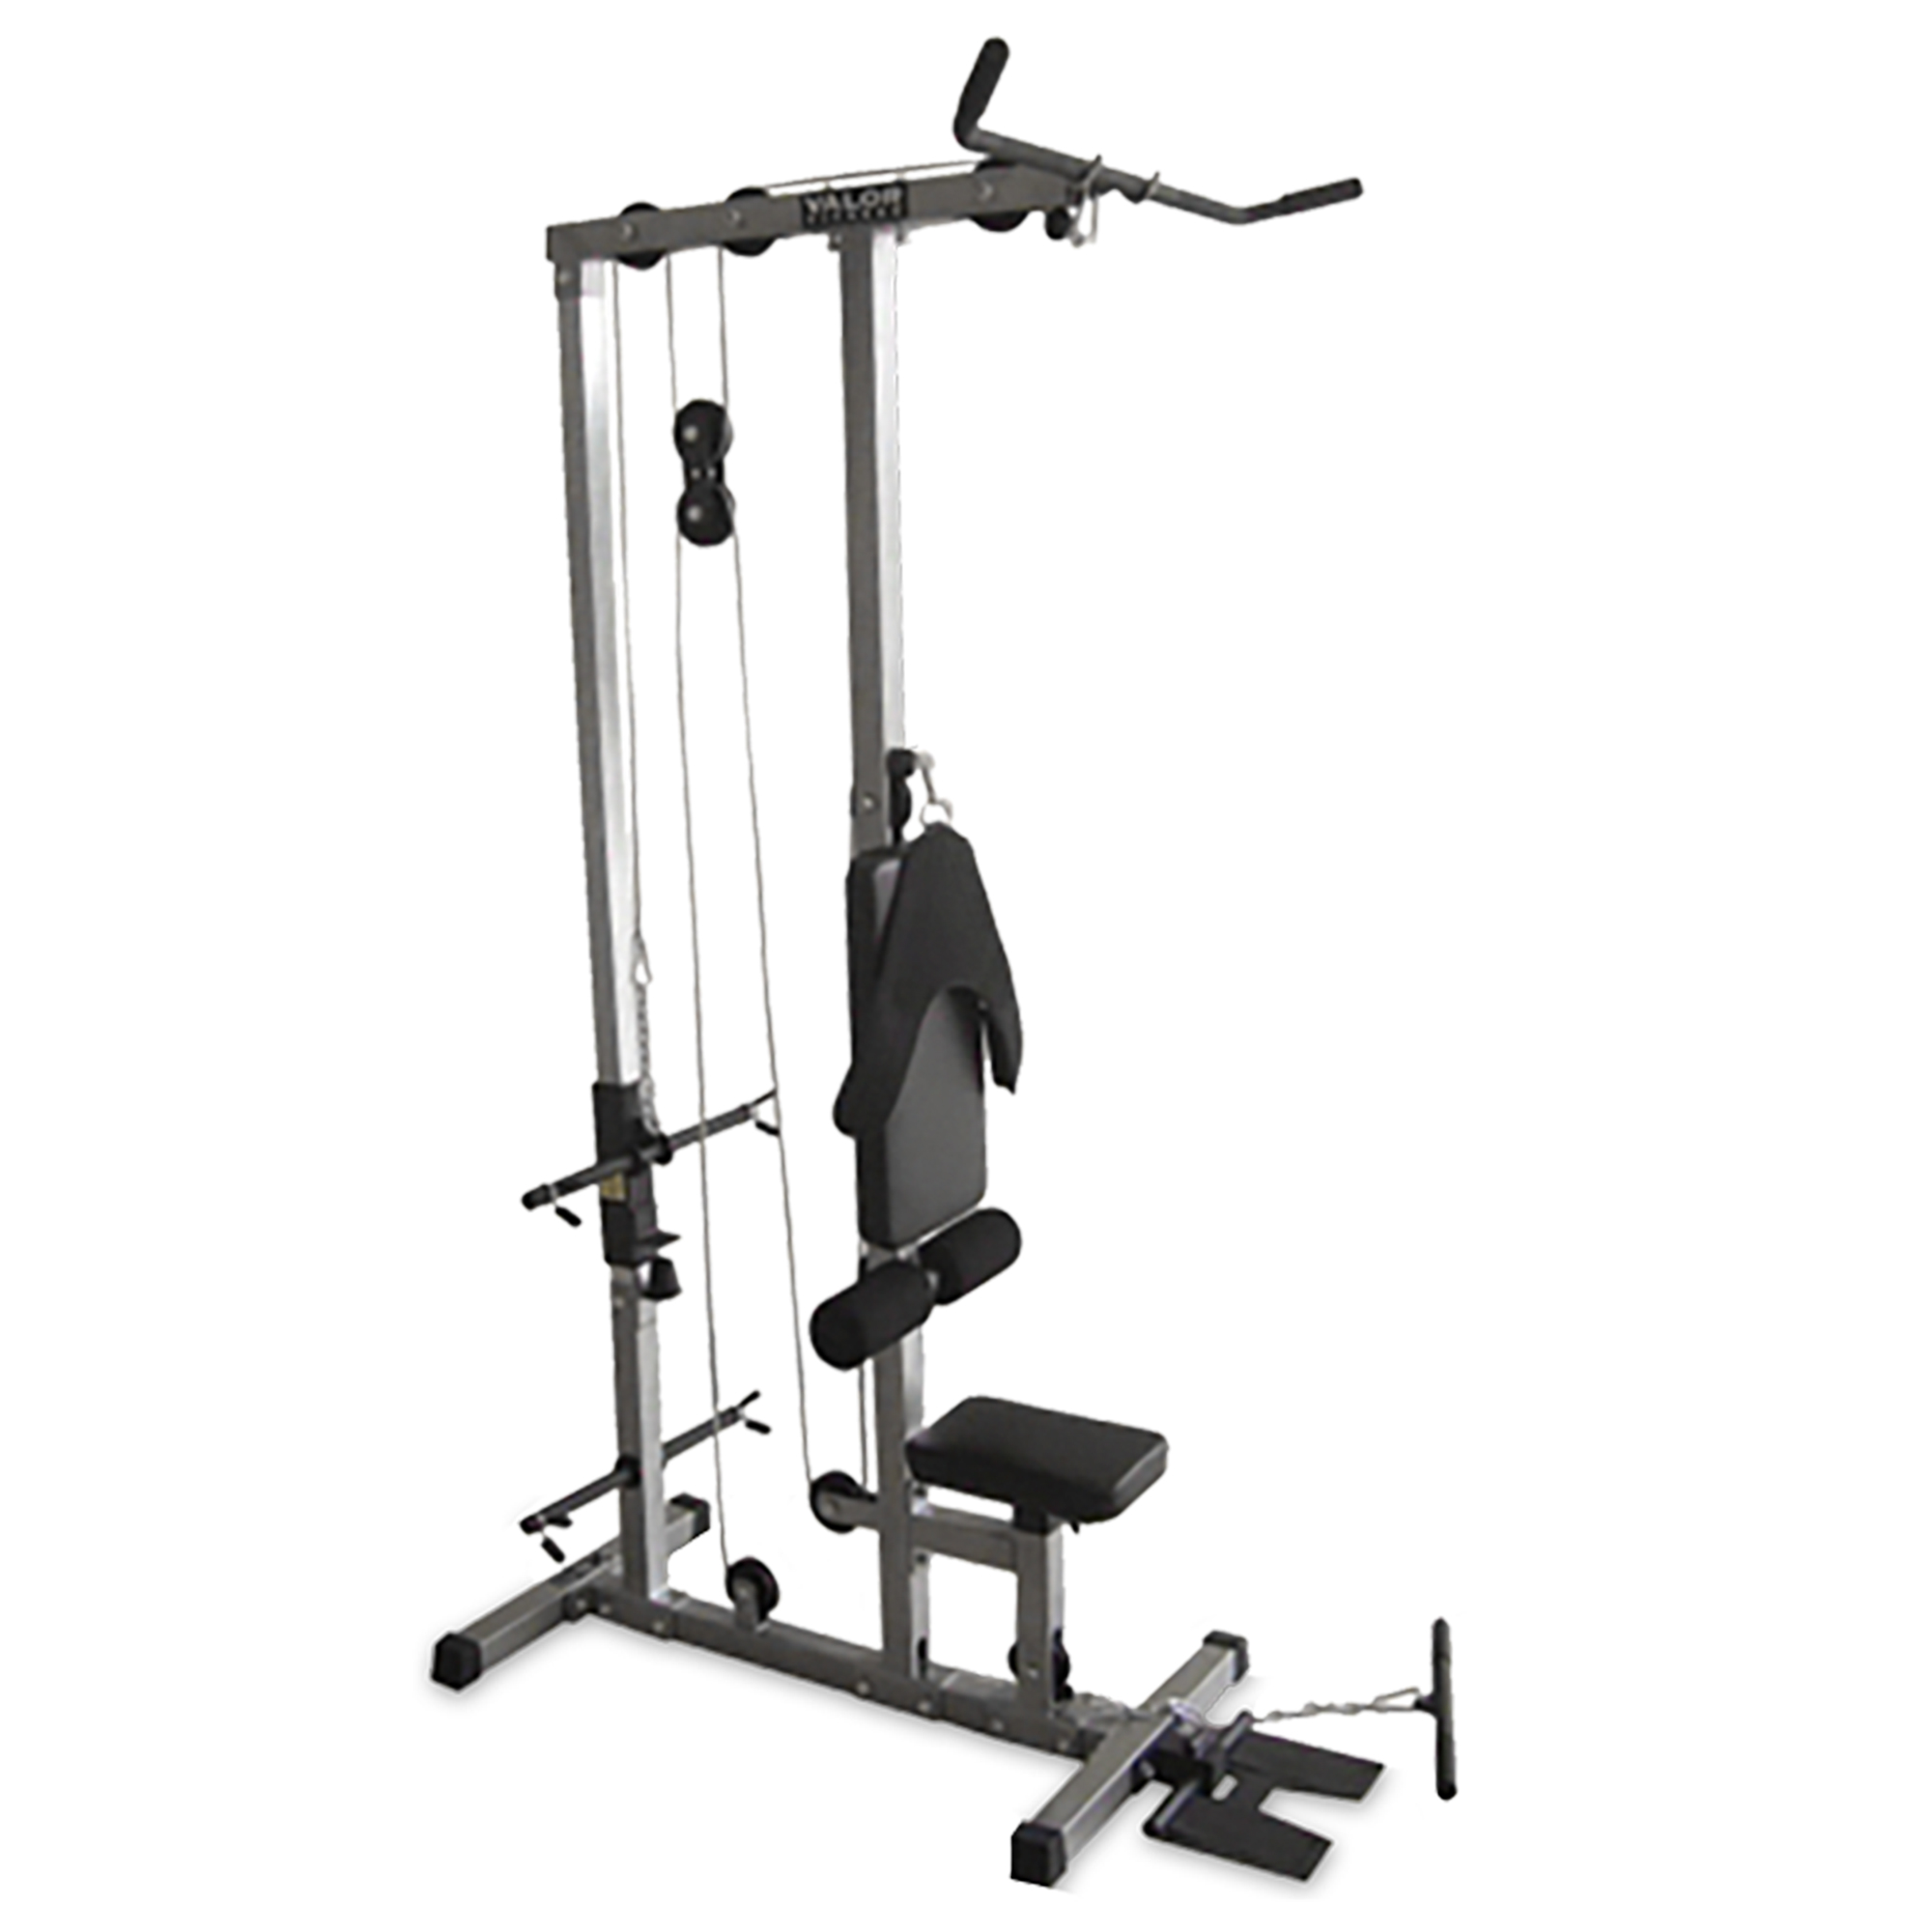 Valor Fitness CB-12 Plate Loading Lat Pull Down by Valor Athletics Inc.